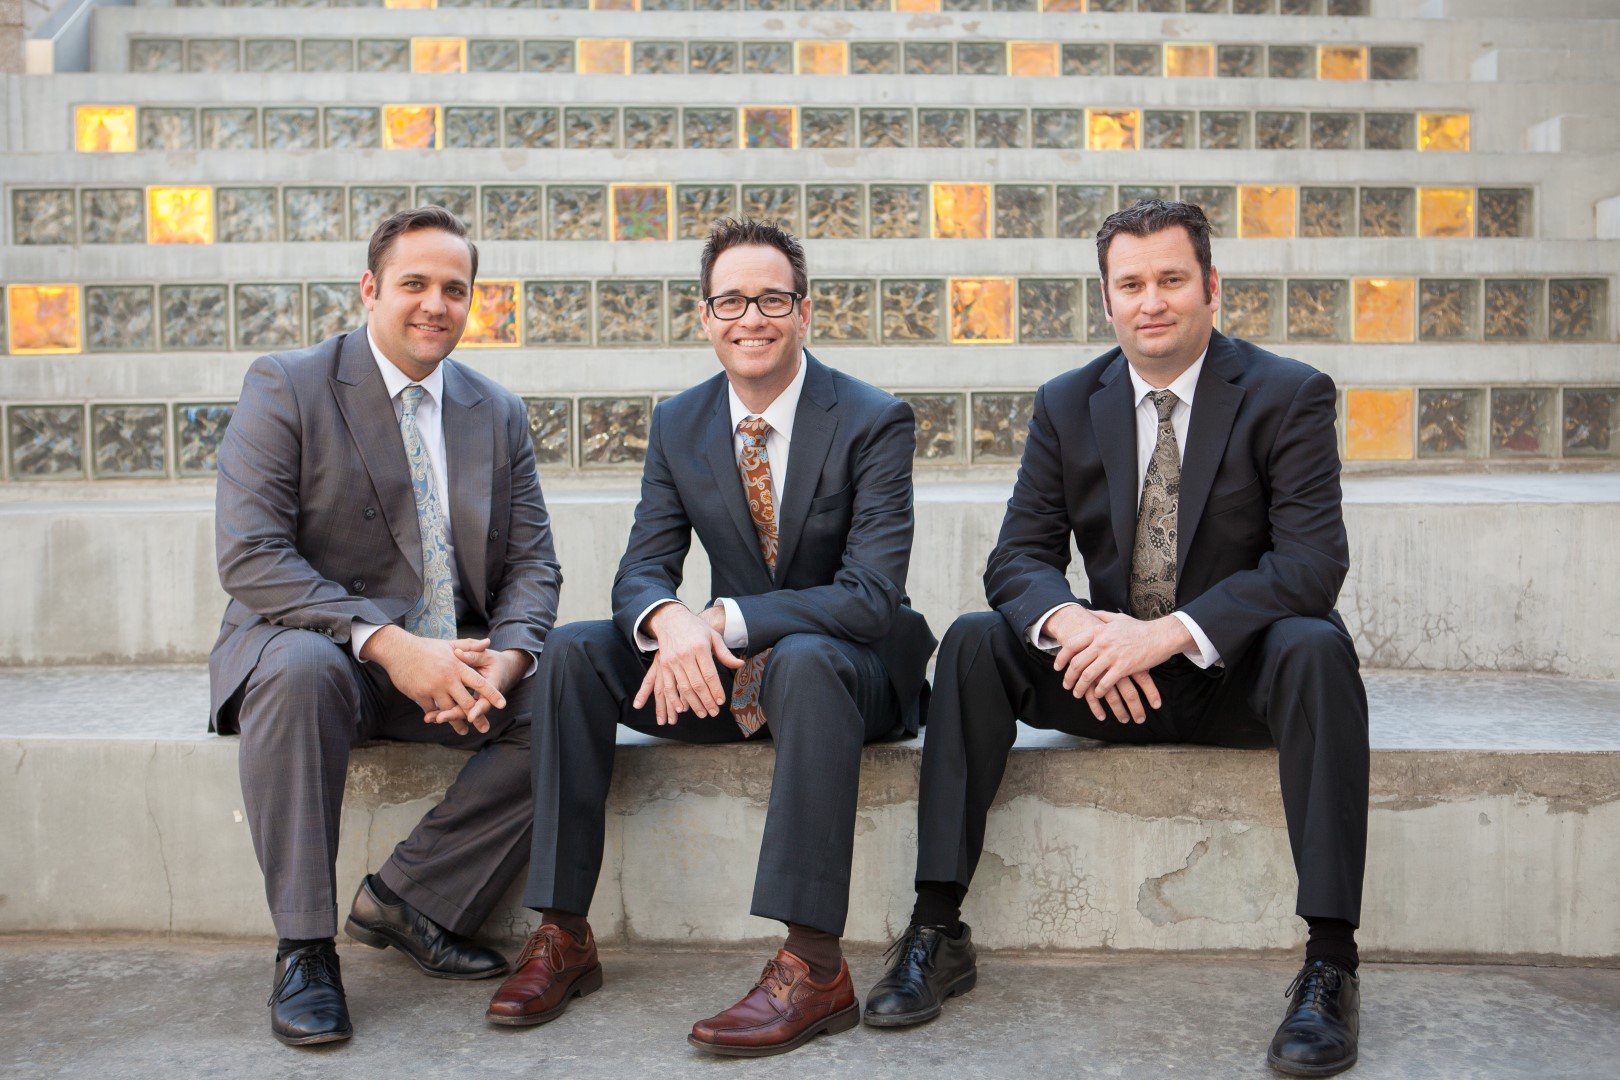 Dana Hogle, Nathan Hogle & Chris Stapley of Hogle Family Law in Gilbert, Arizona.